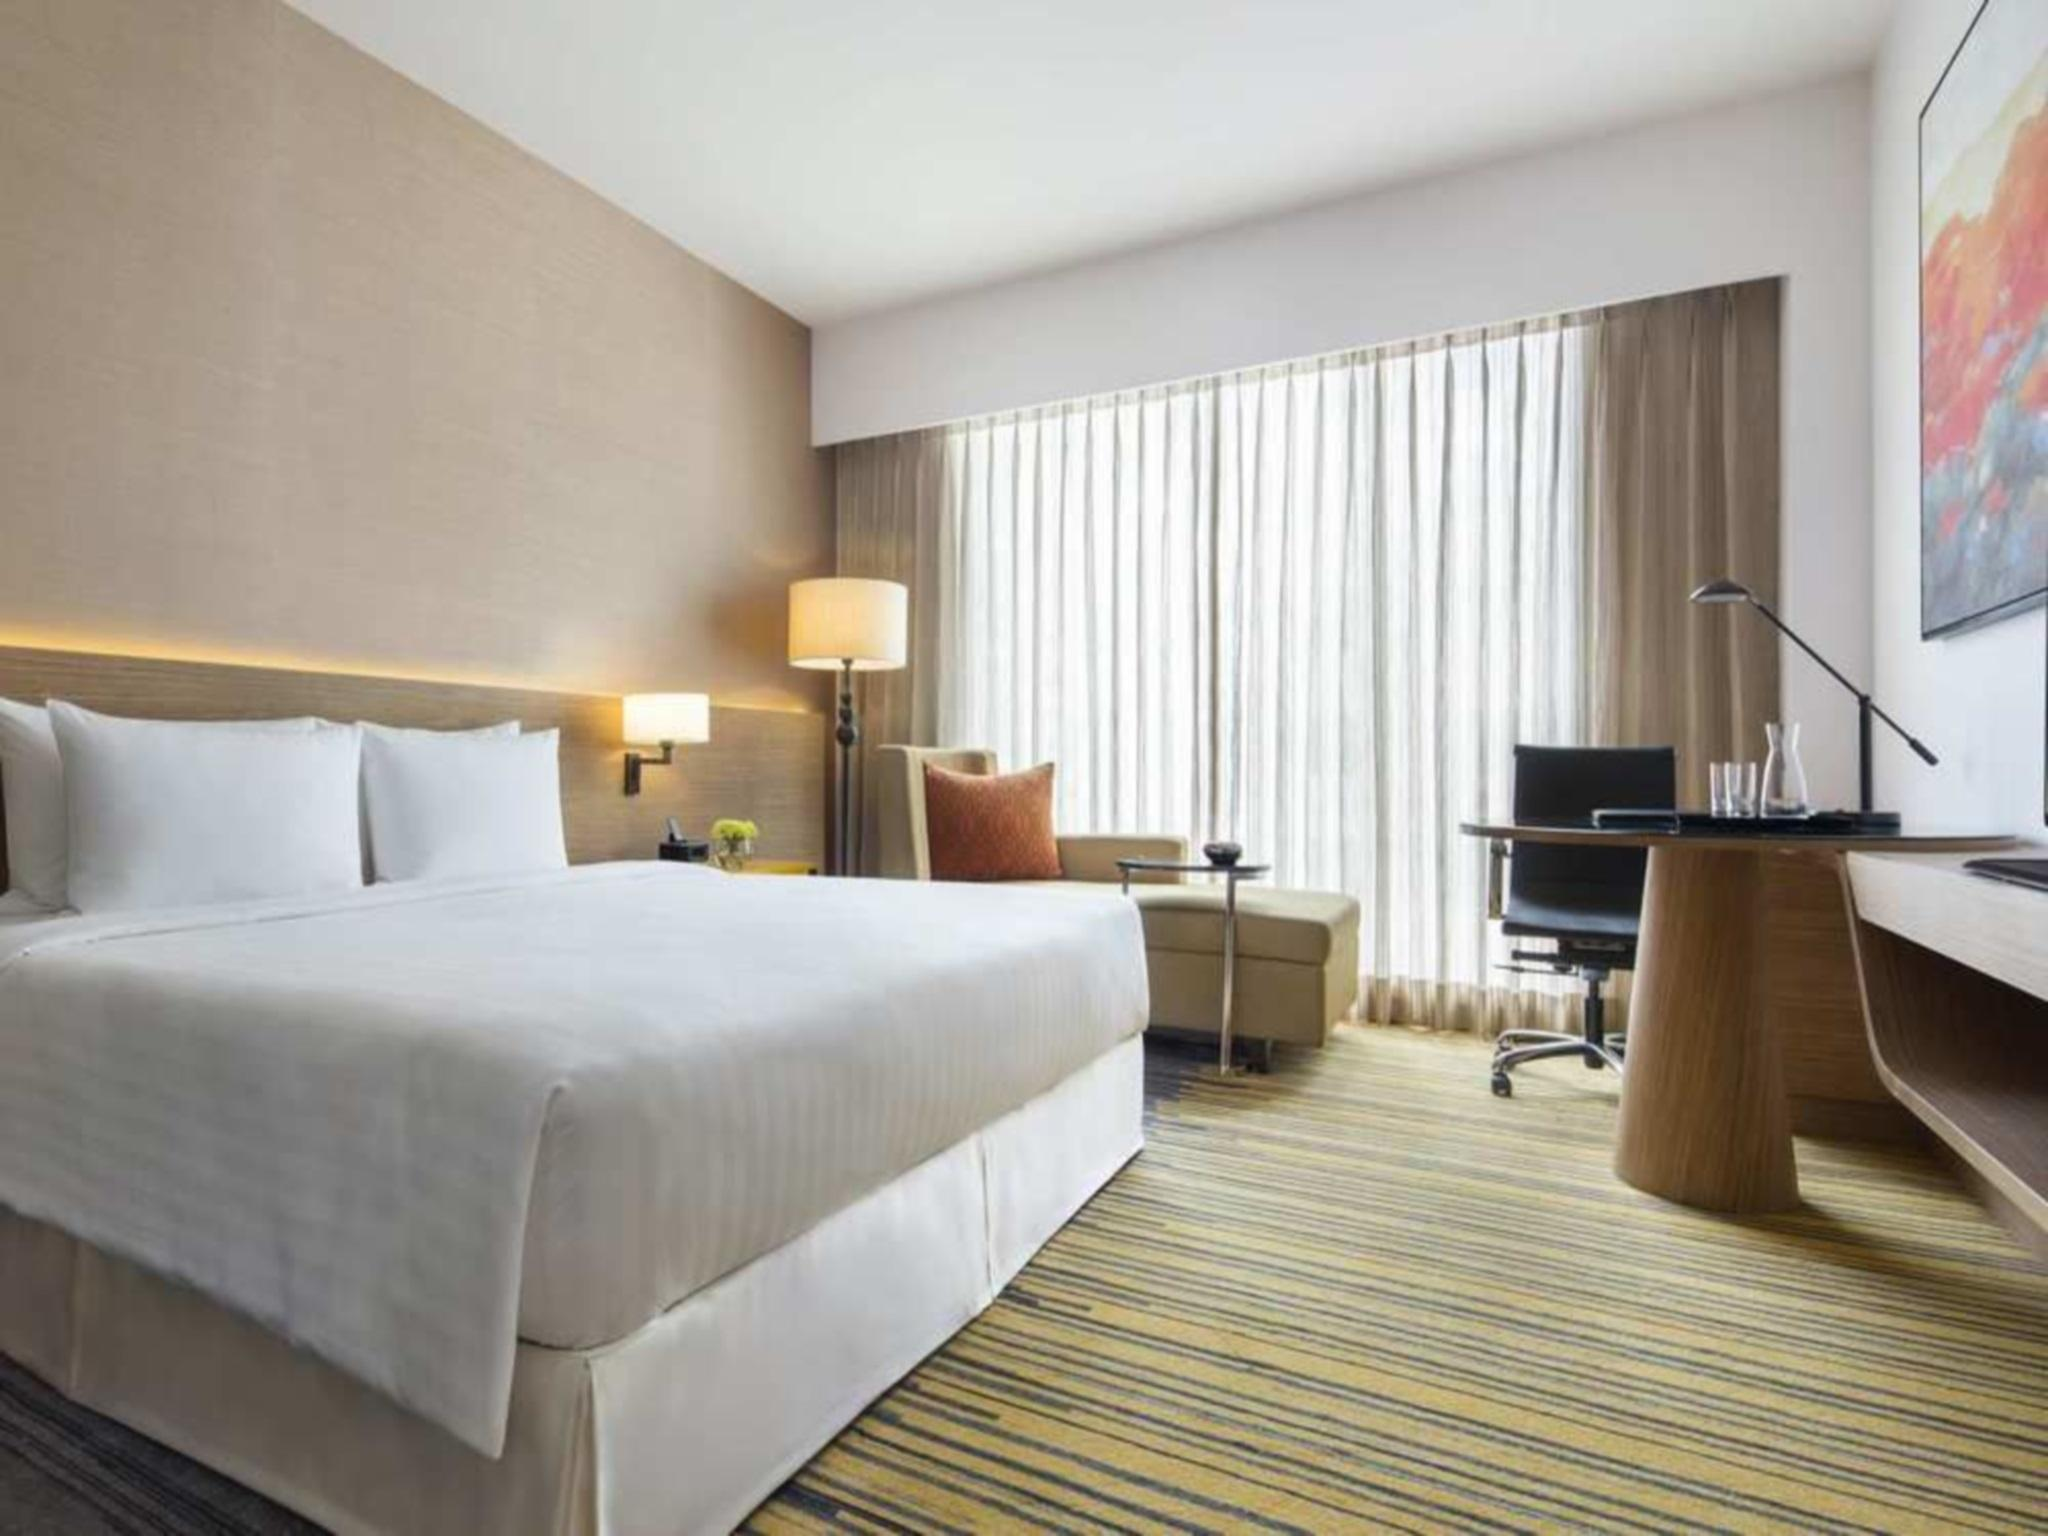 Executive Deluxe Room, Executive lounge access, Guest room